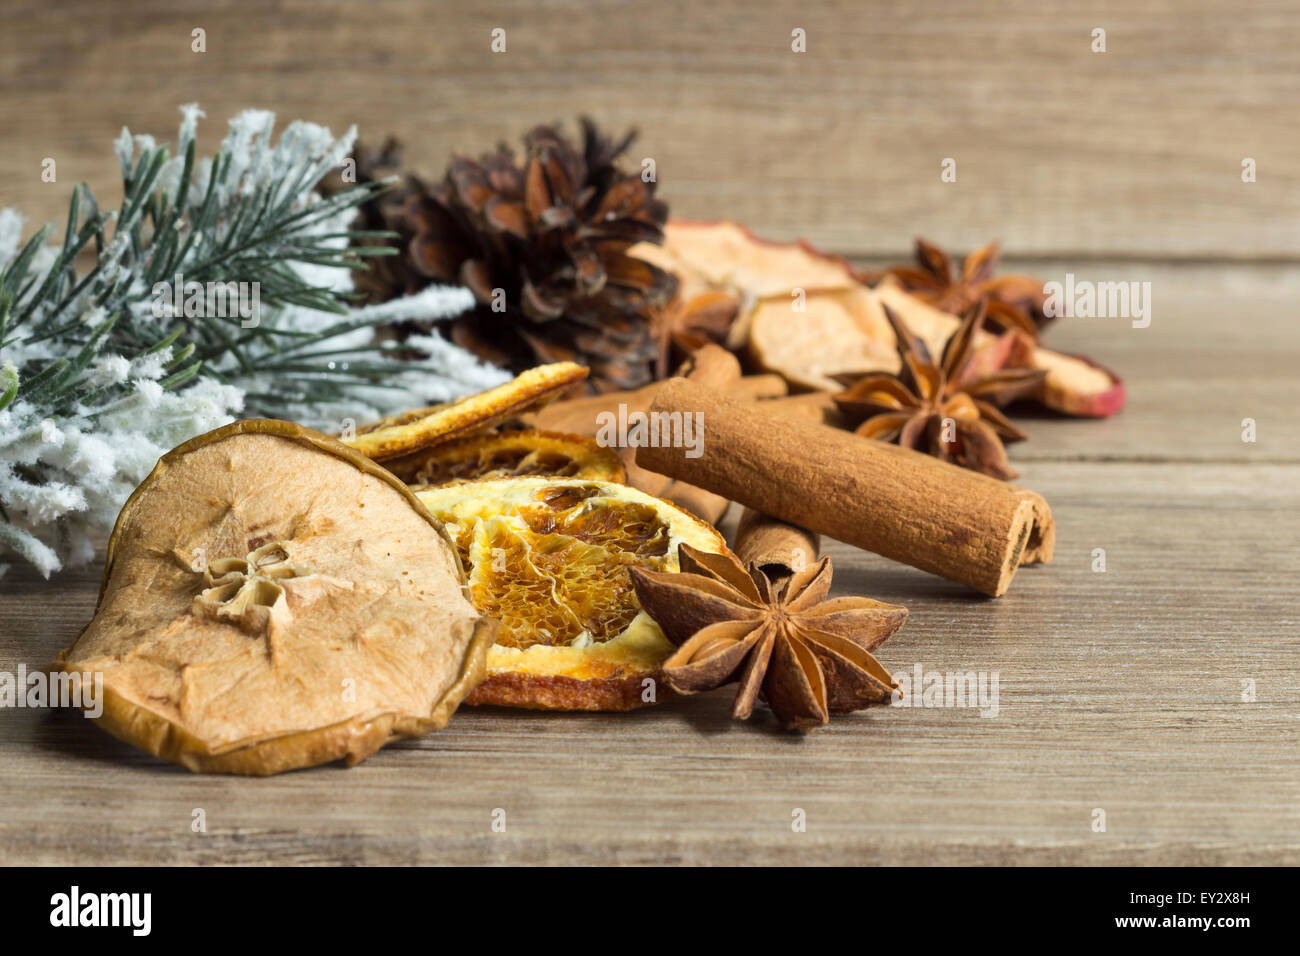 Dried fruits and spices on wooden planks, Christmas decoration - Stock Image